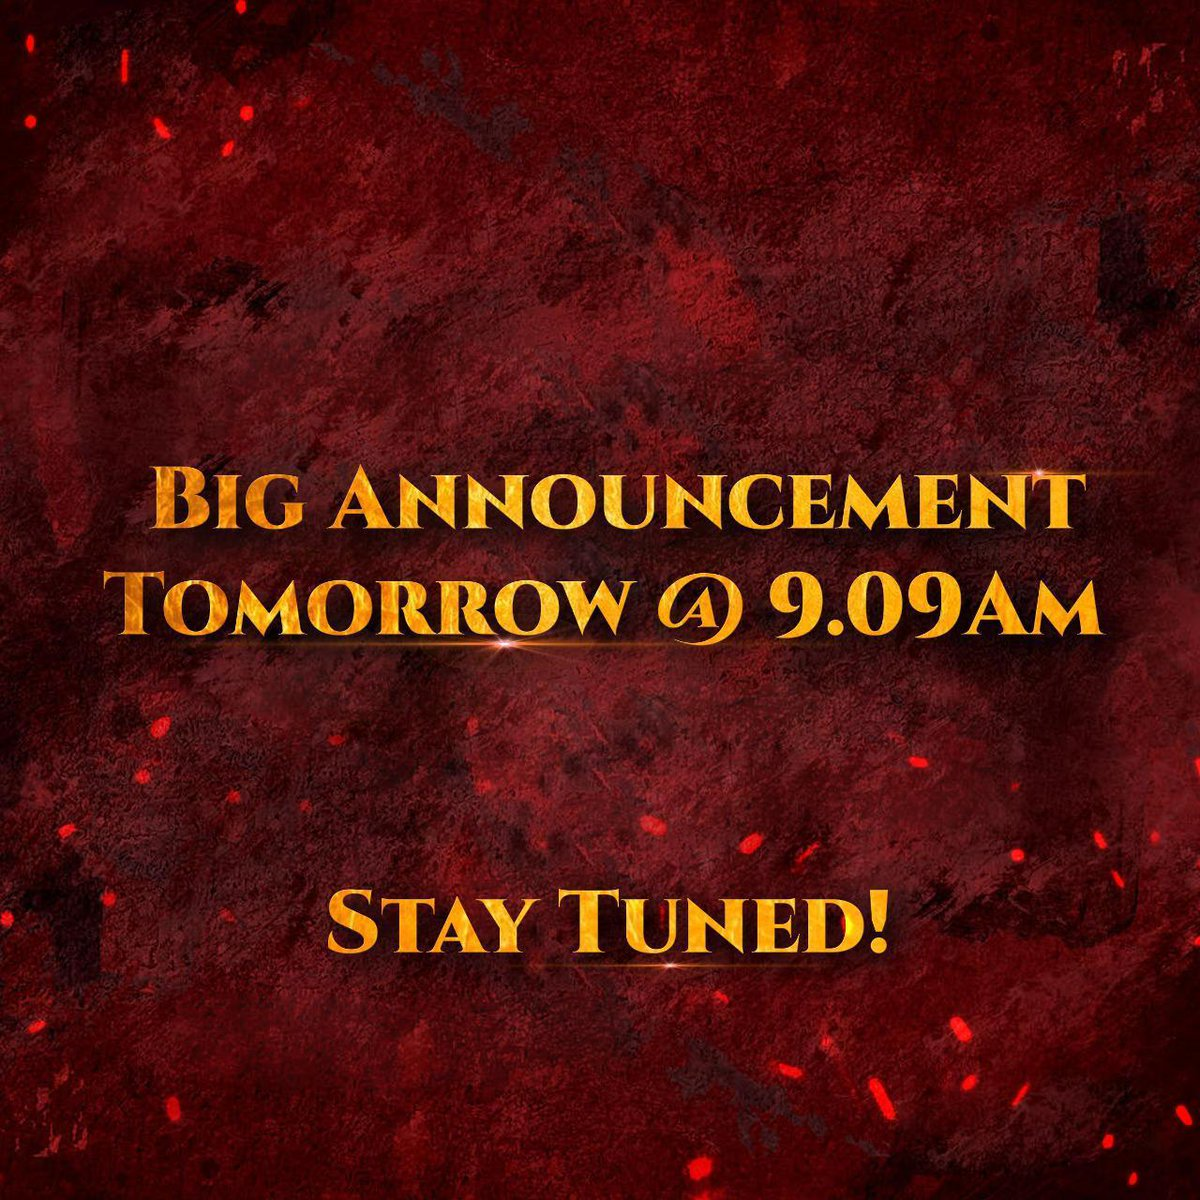 A very big and exciting announcement happening tomorrow at 9:09 AM!  Watch this space!... Guess Karo